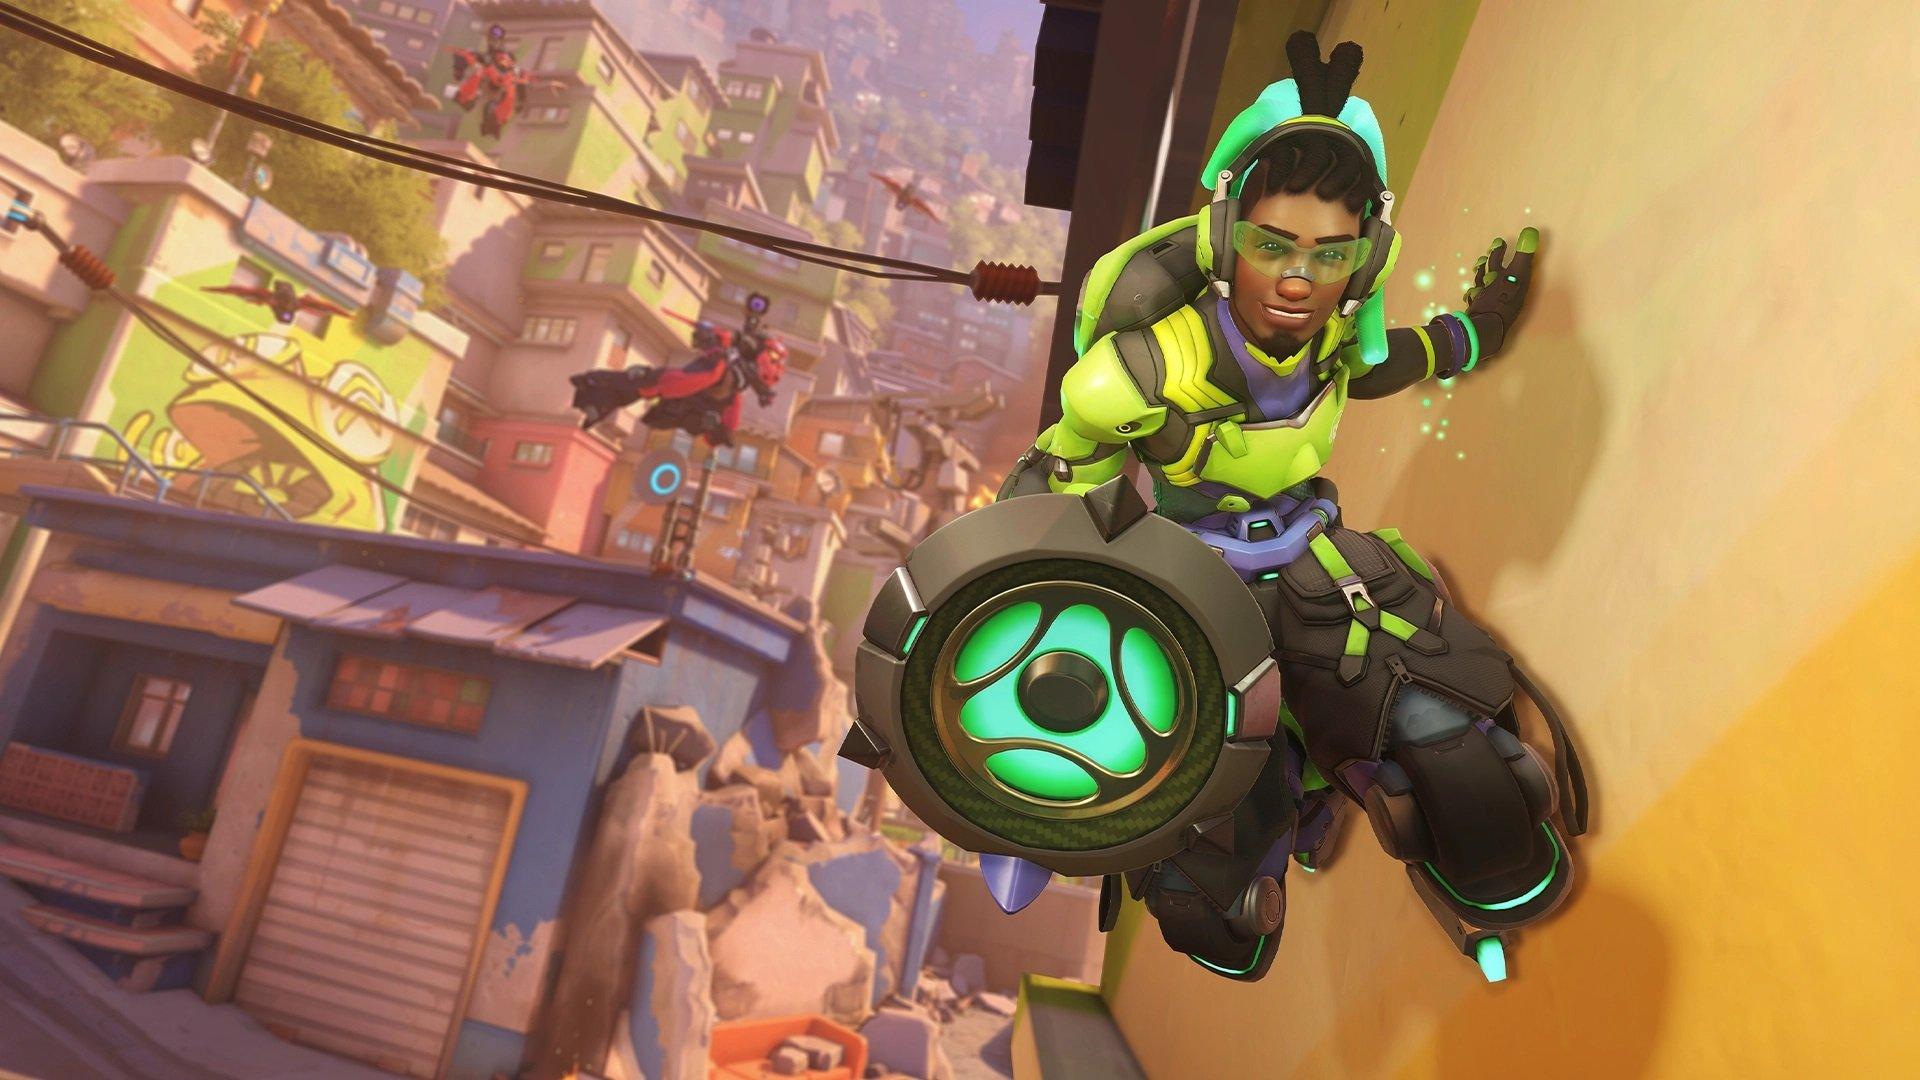 Get a free copy of Overwatch on PC screenshot